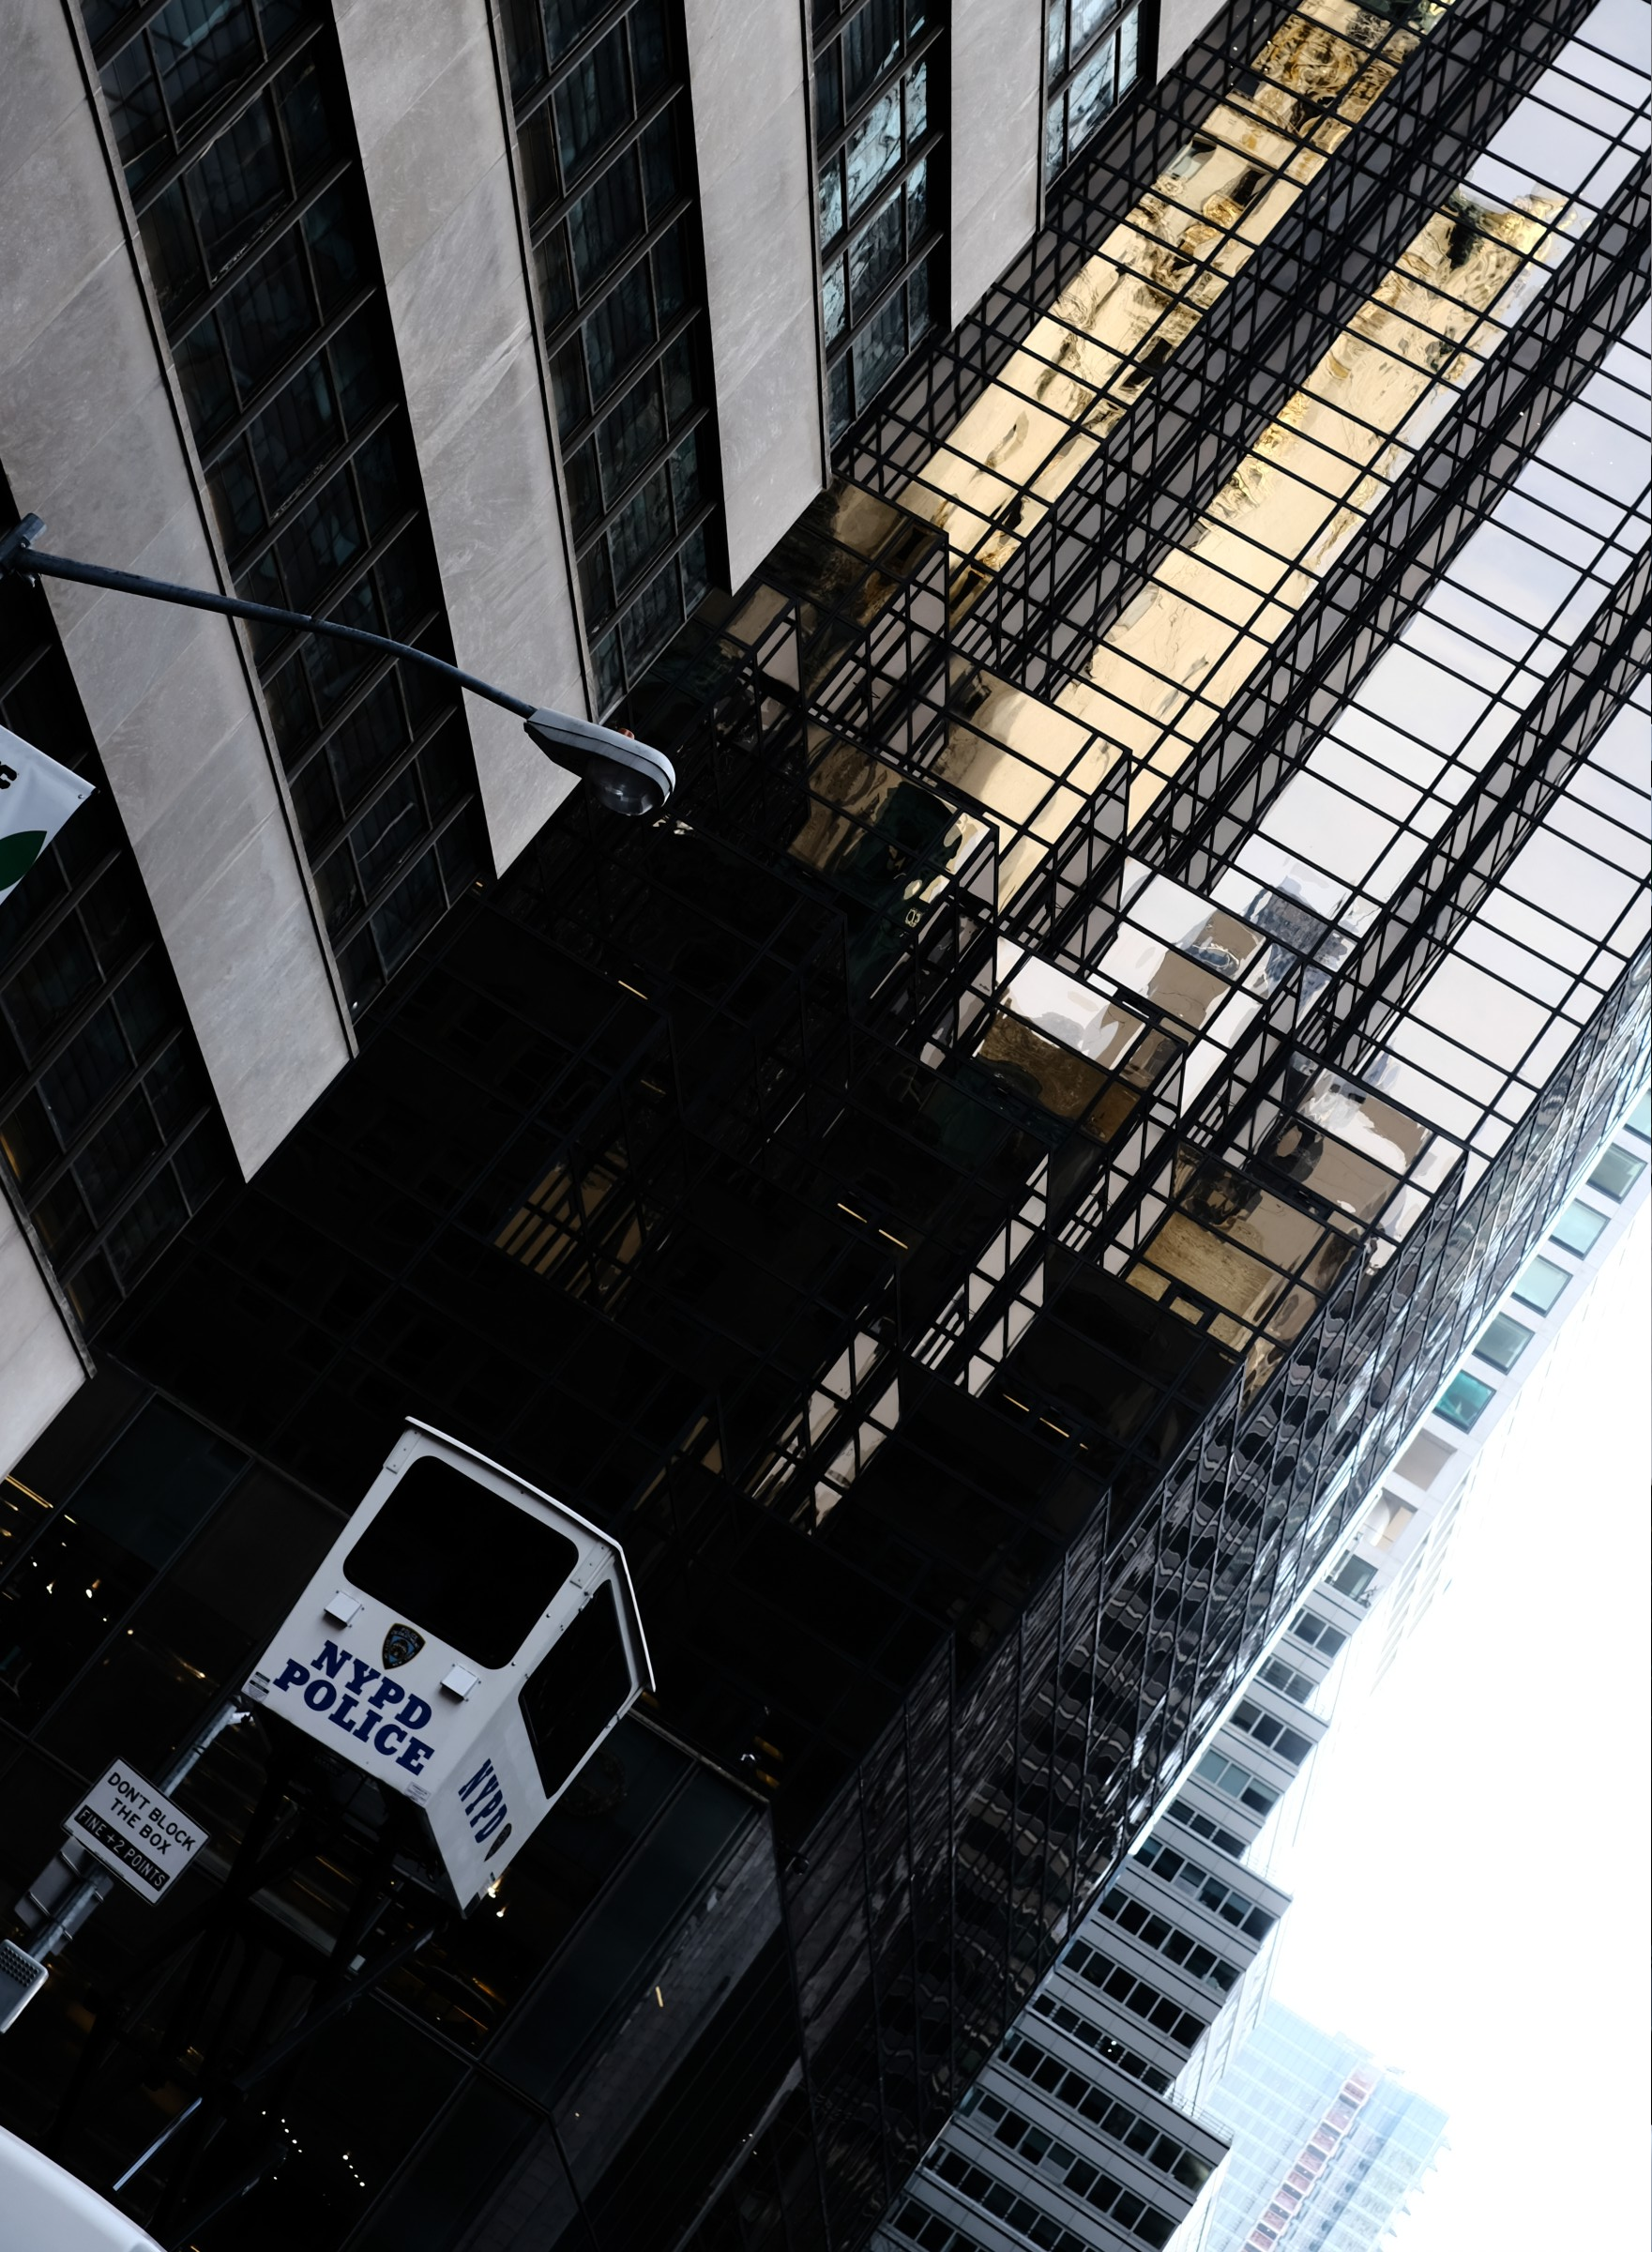 NYPD spy platform at Trump Tower